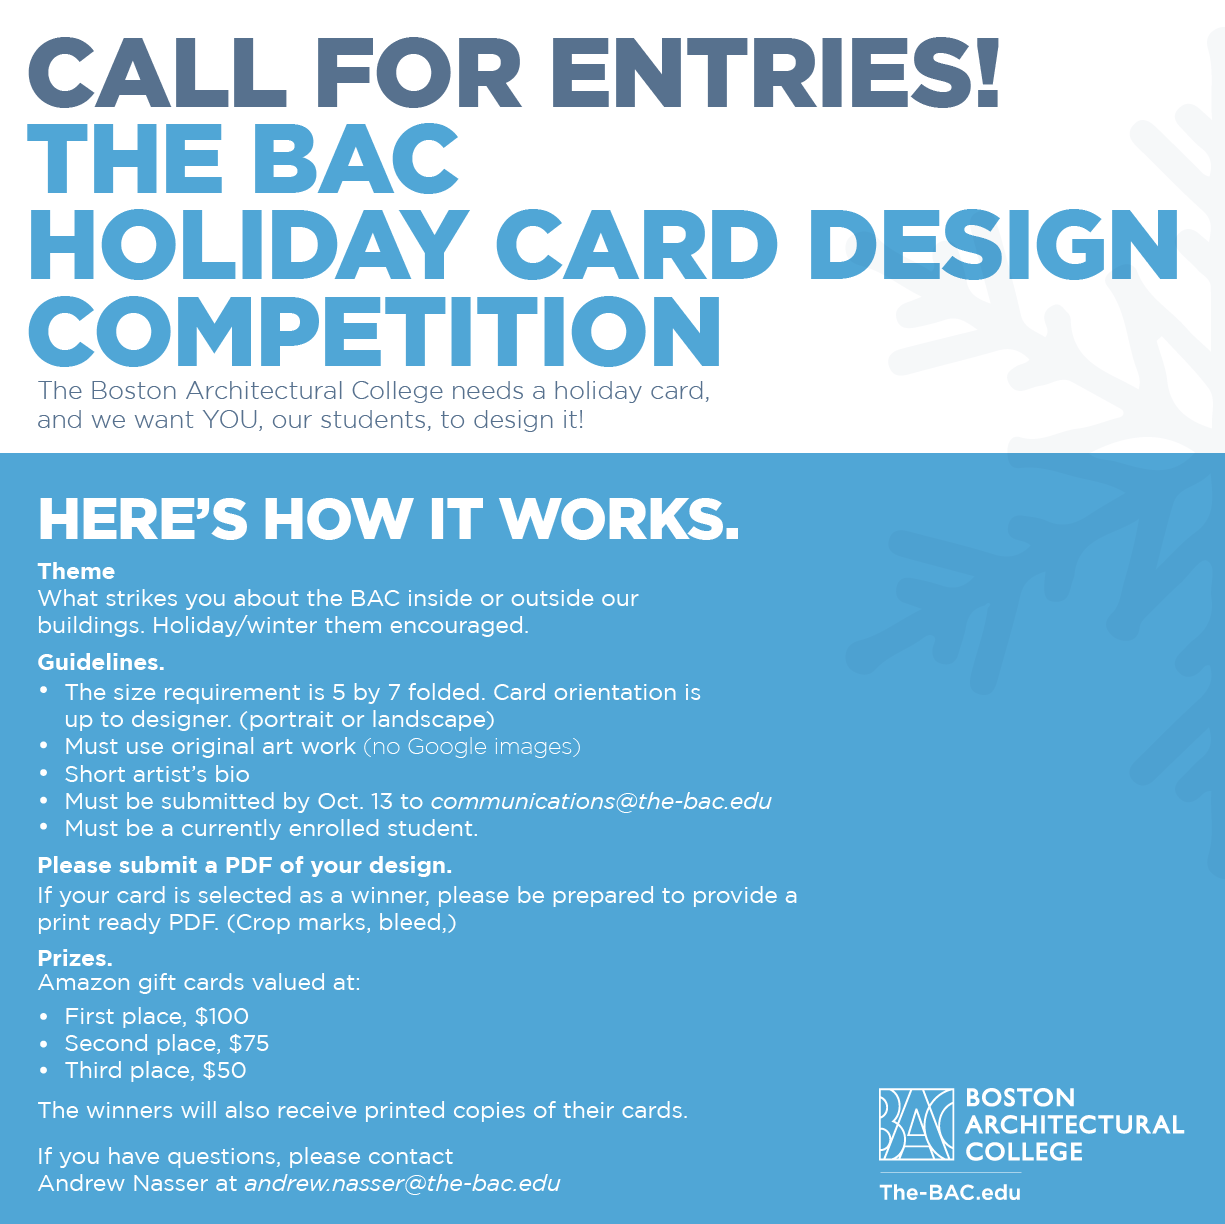 holiday card design competition deadline to submit 10 13 17